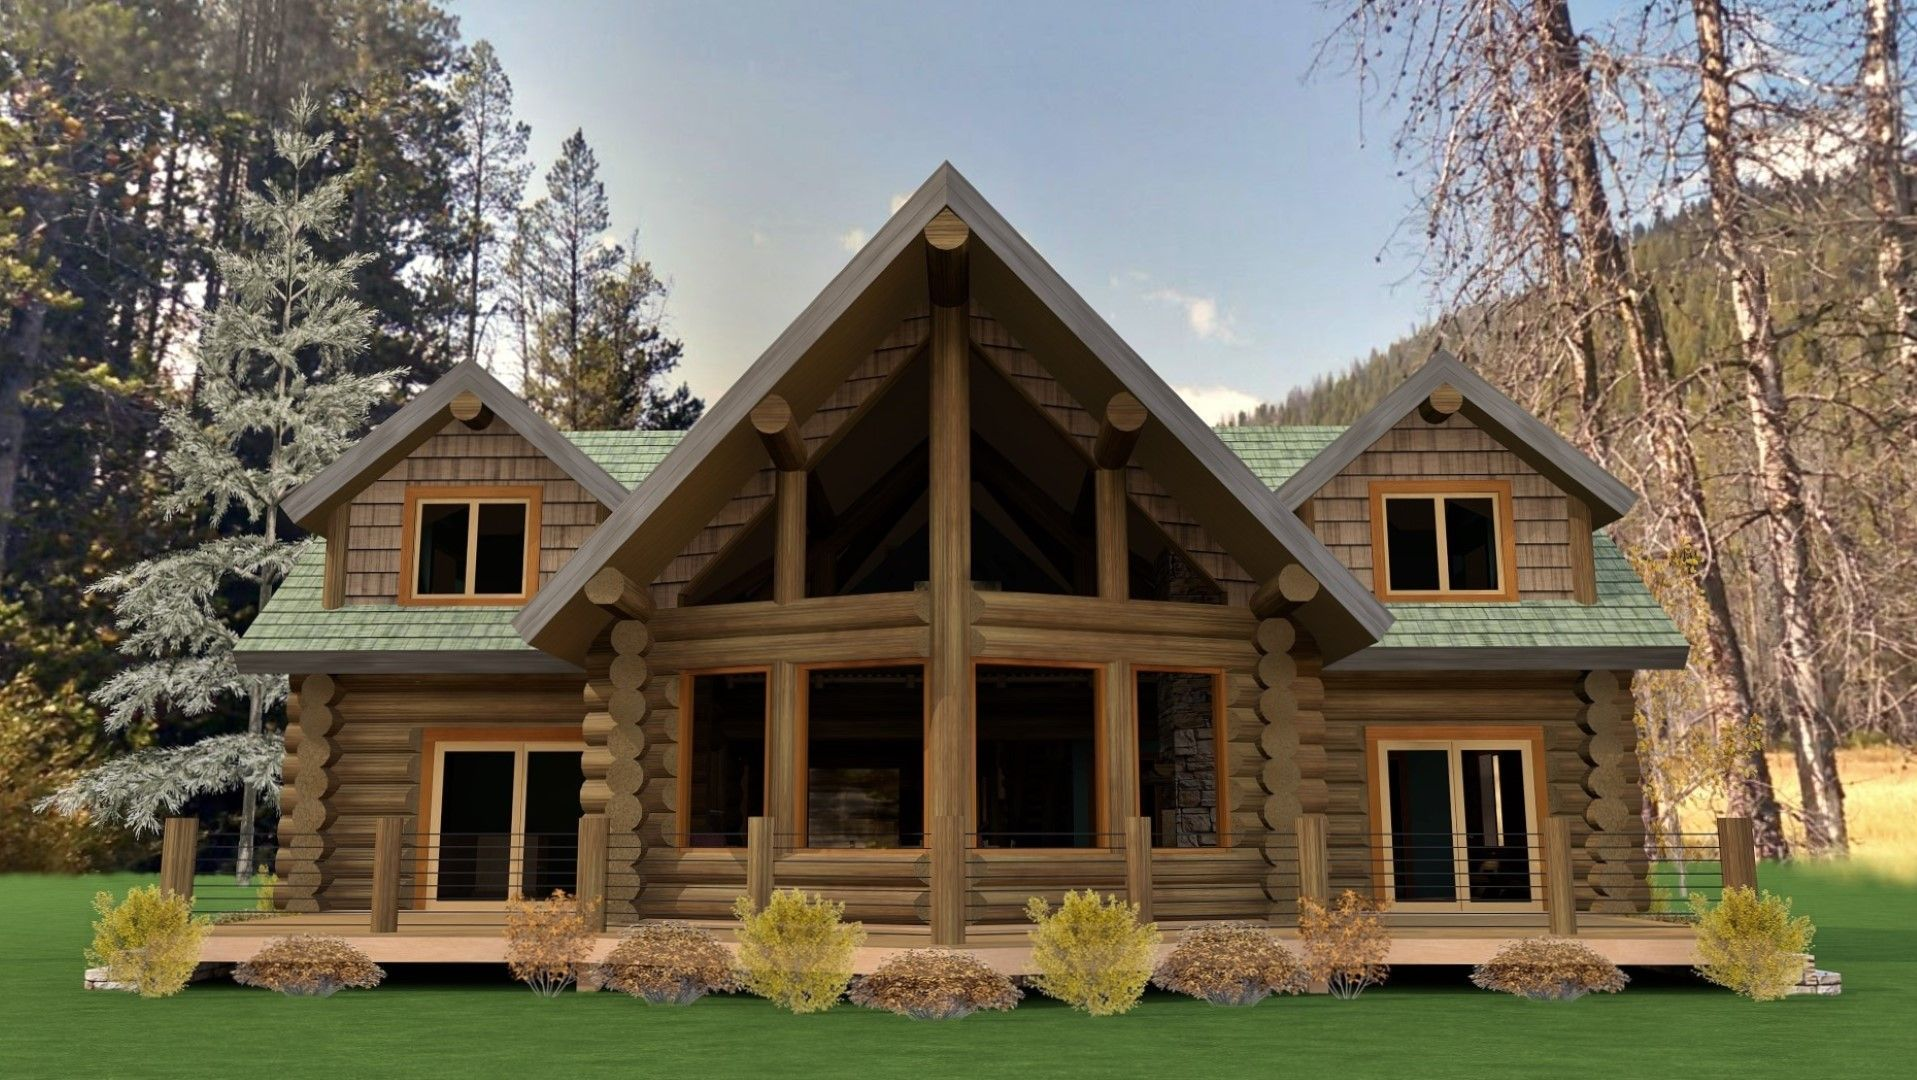 Today S Floorplan The Koocanusa One Of Our Most Popular Designs This Home Features An Open Loft P Rustic House Plans Loft Floor Plans House In The Woods